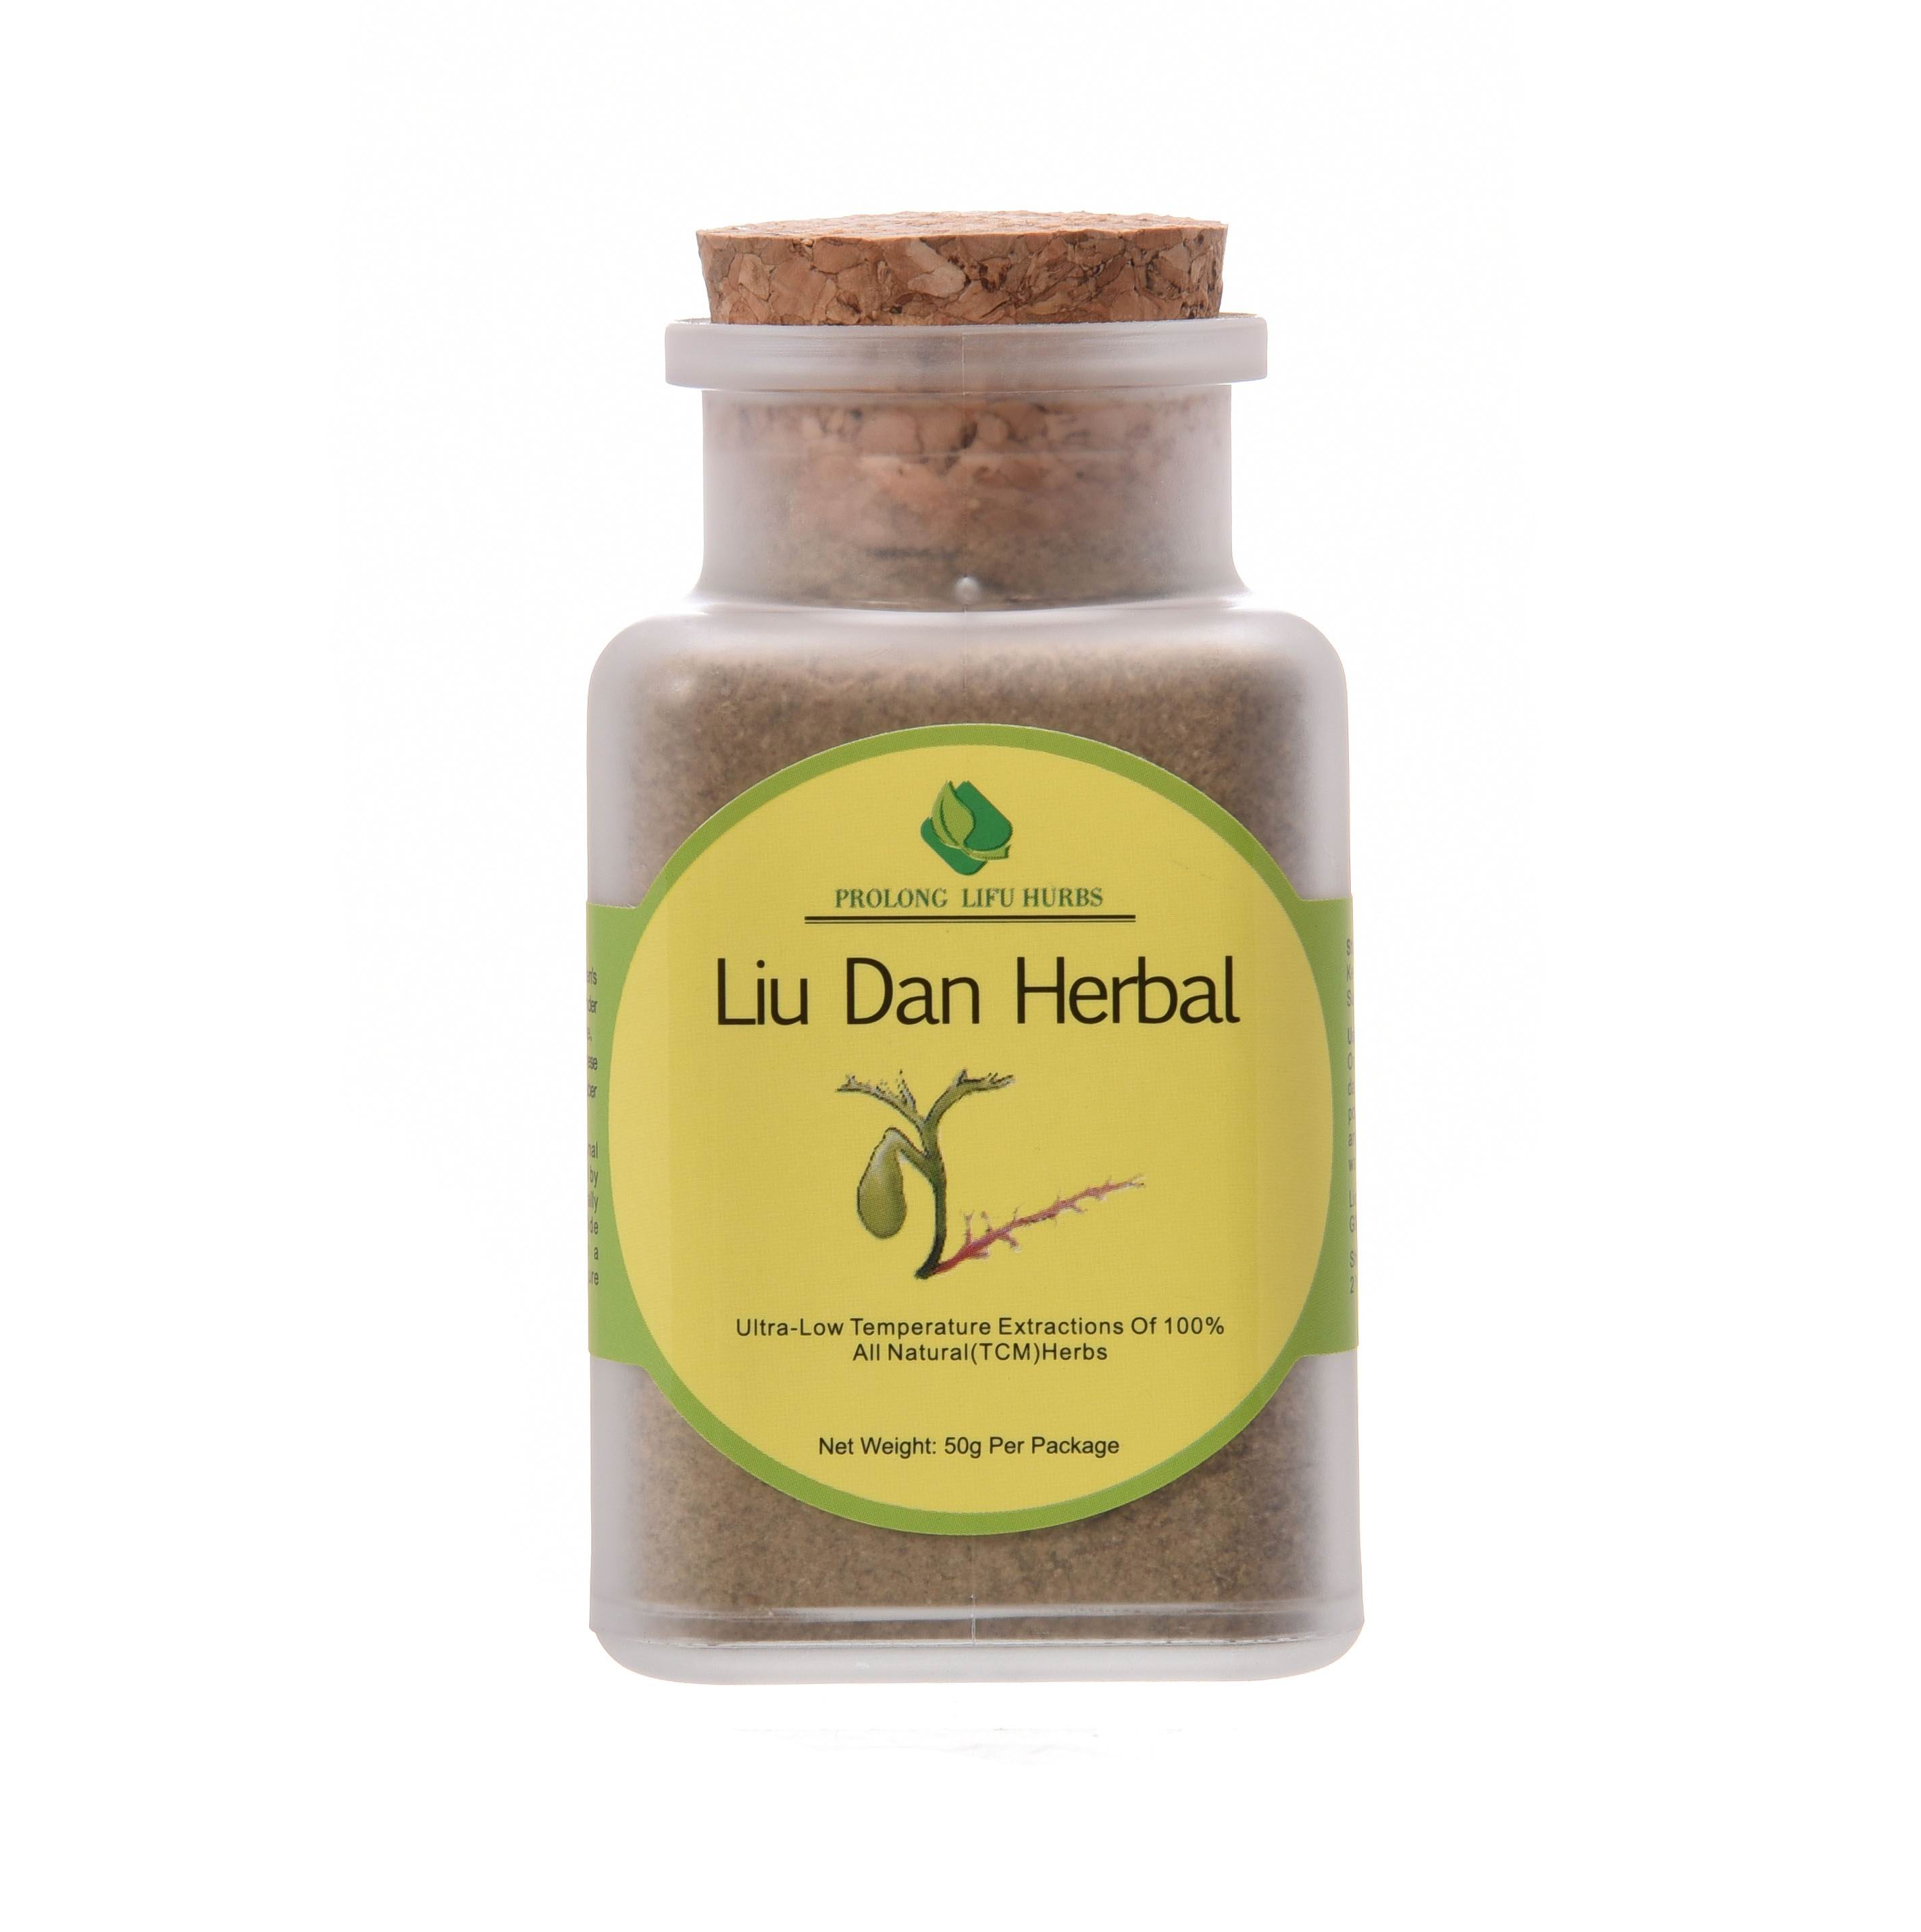 Prolong Lifu Liu Dan Herbal Cure Cholecystitis And Gallstones. Promote The Discharge Of Stones And Relief Pain